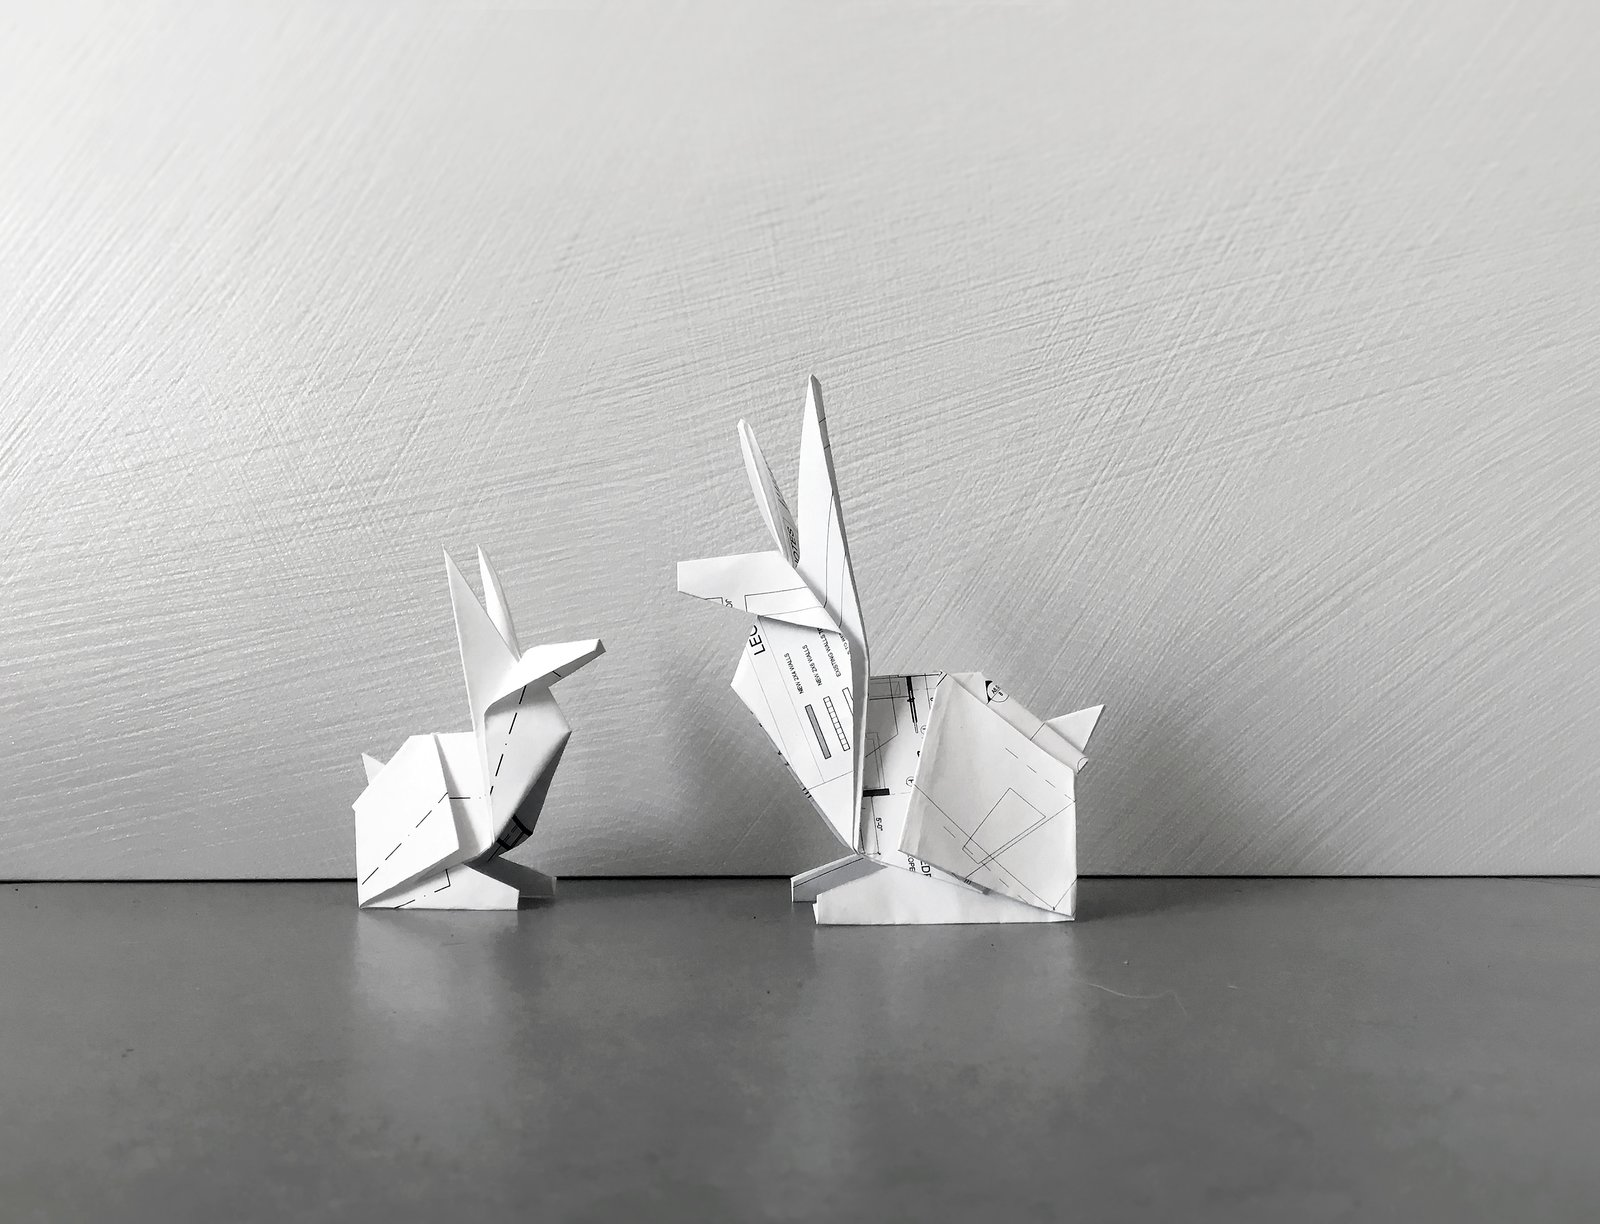 floor plan origami bunnies  (repurposed architectural drawings  :)  Architectural Drawings